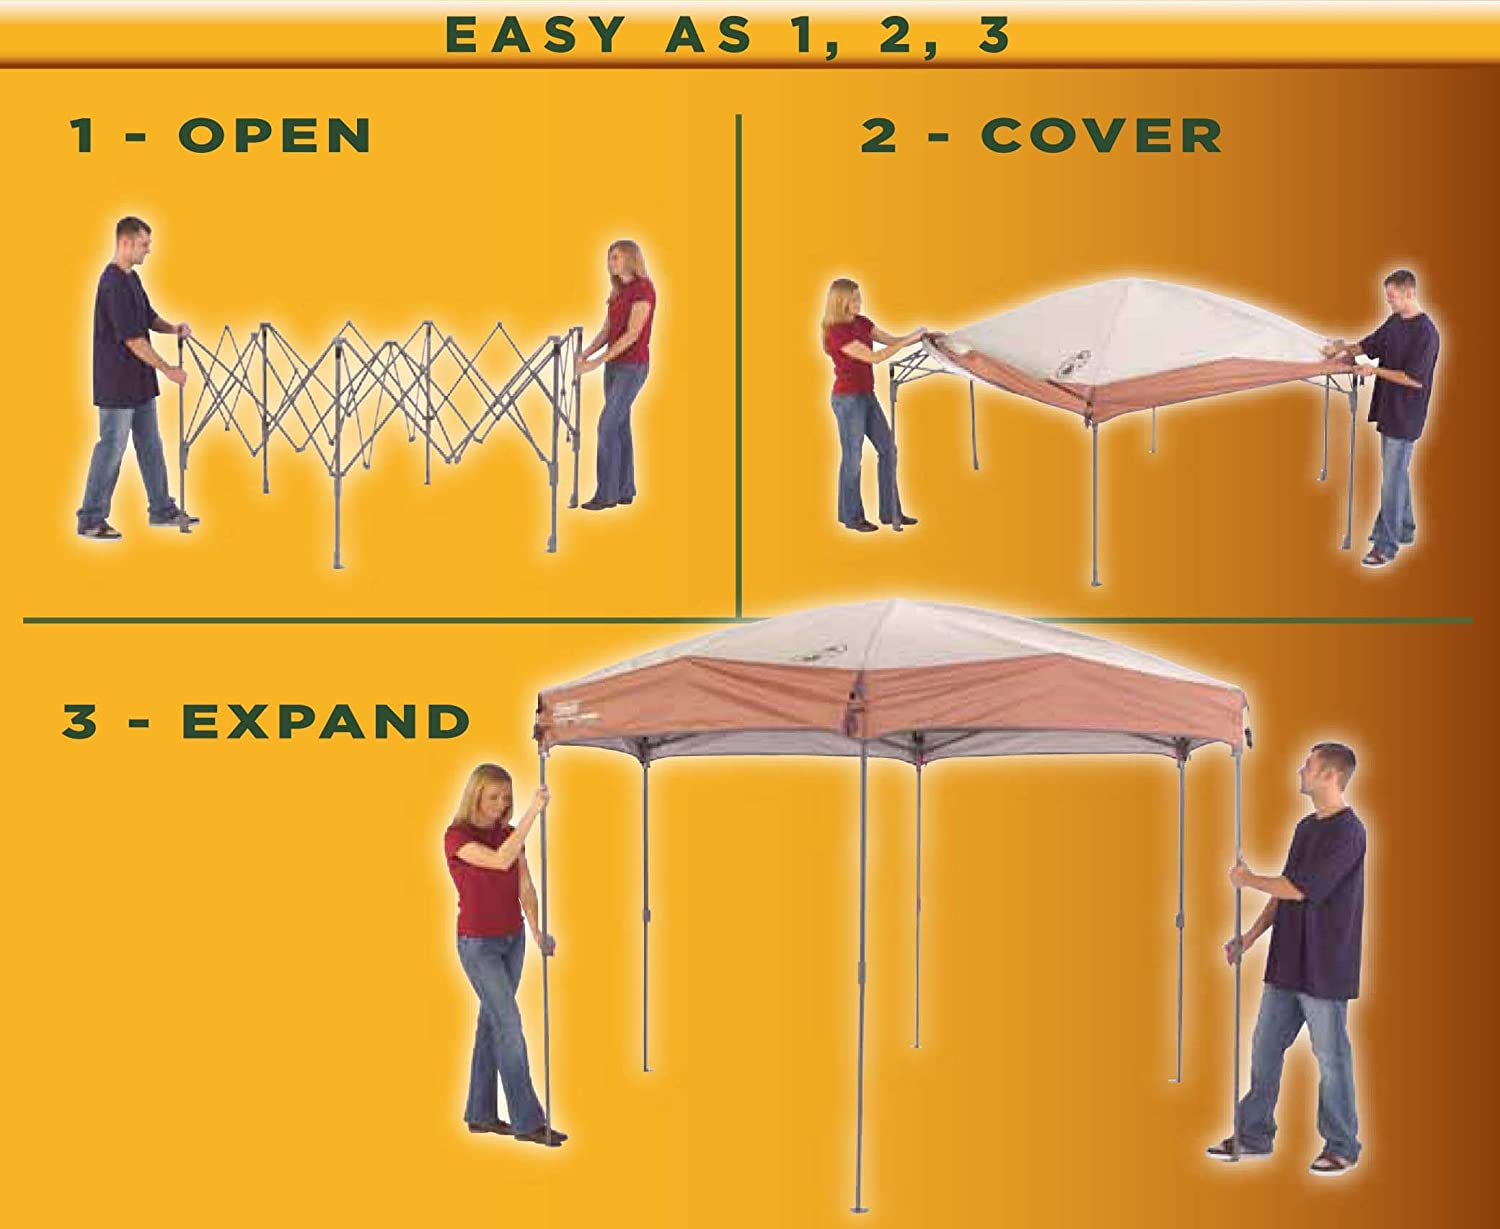 Coleman Screened Canopy Tent with Instant Setup | Back Home Screenhouse Sets Up in 60 Seconds 71 C z5zIwL